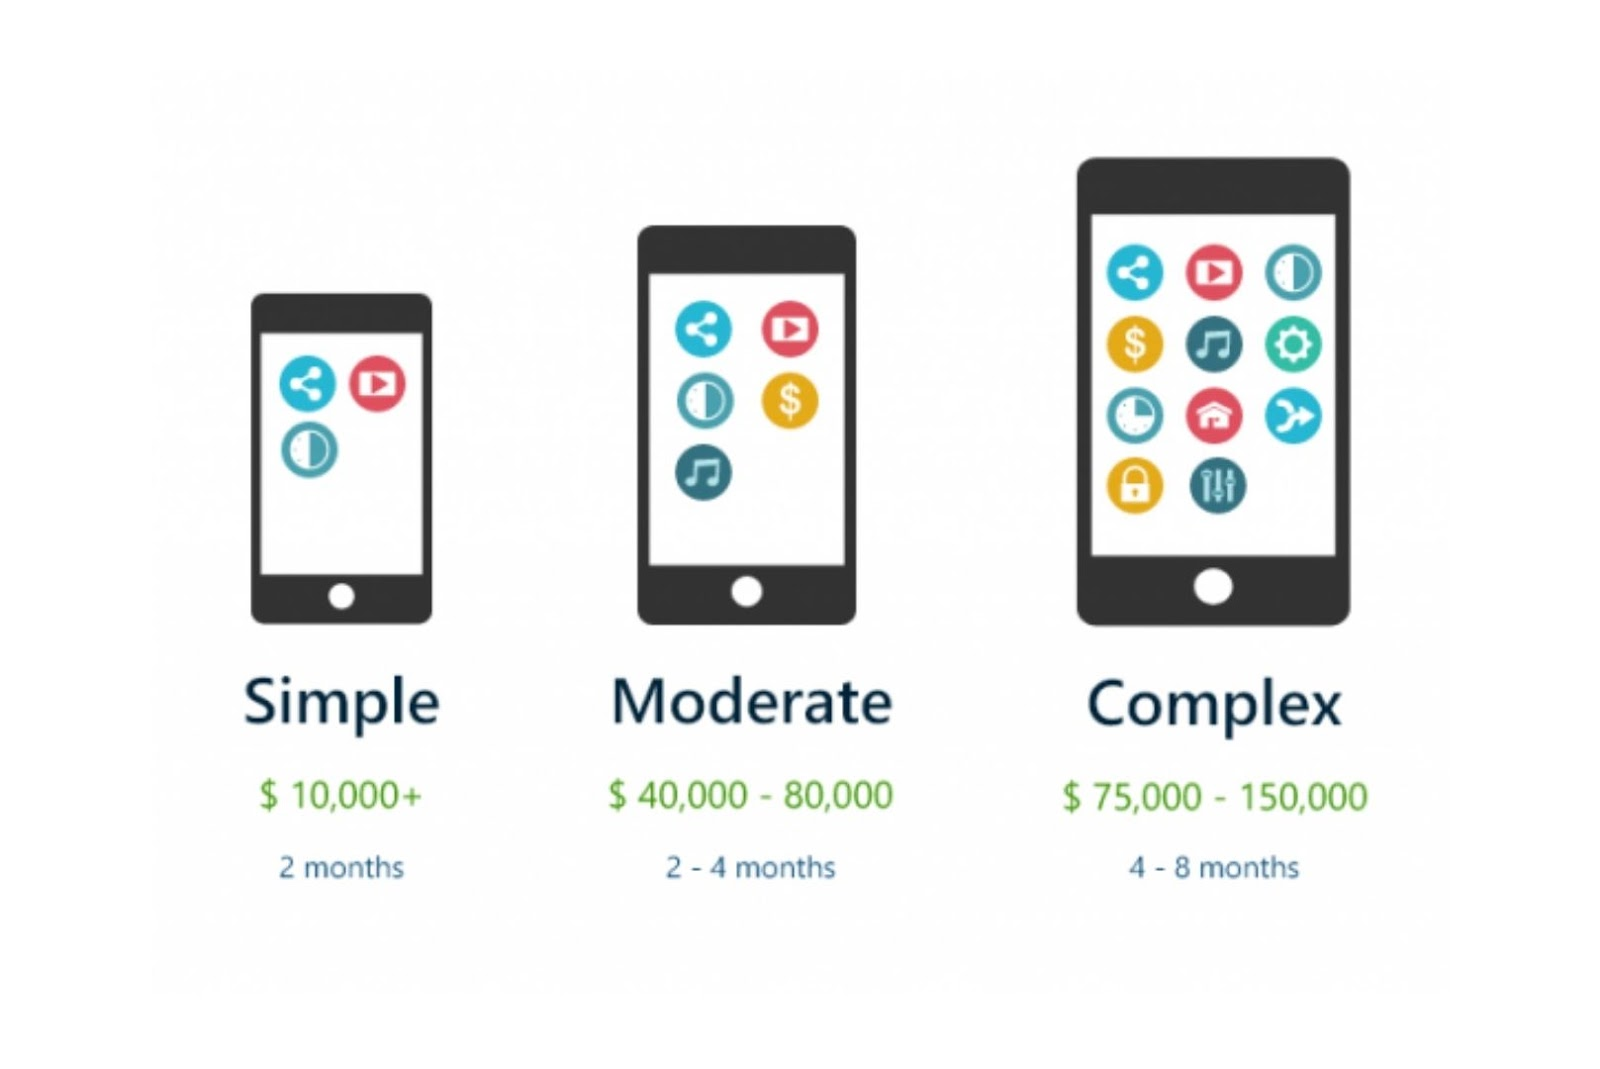 Cost of building simple to complex features in a mobile app